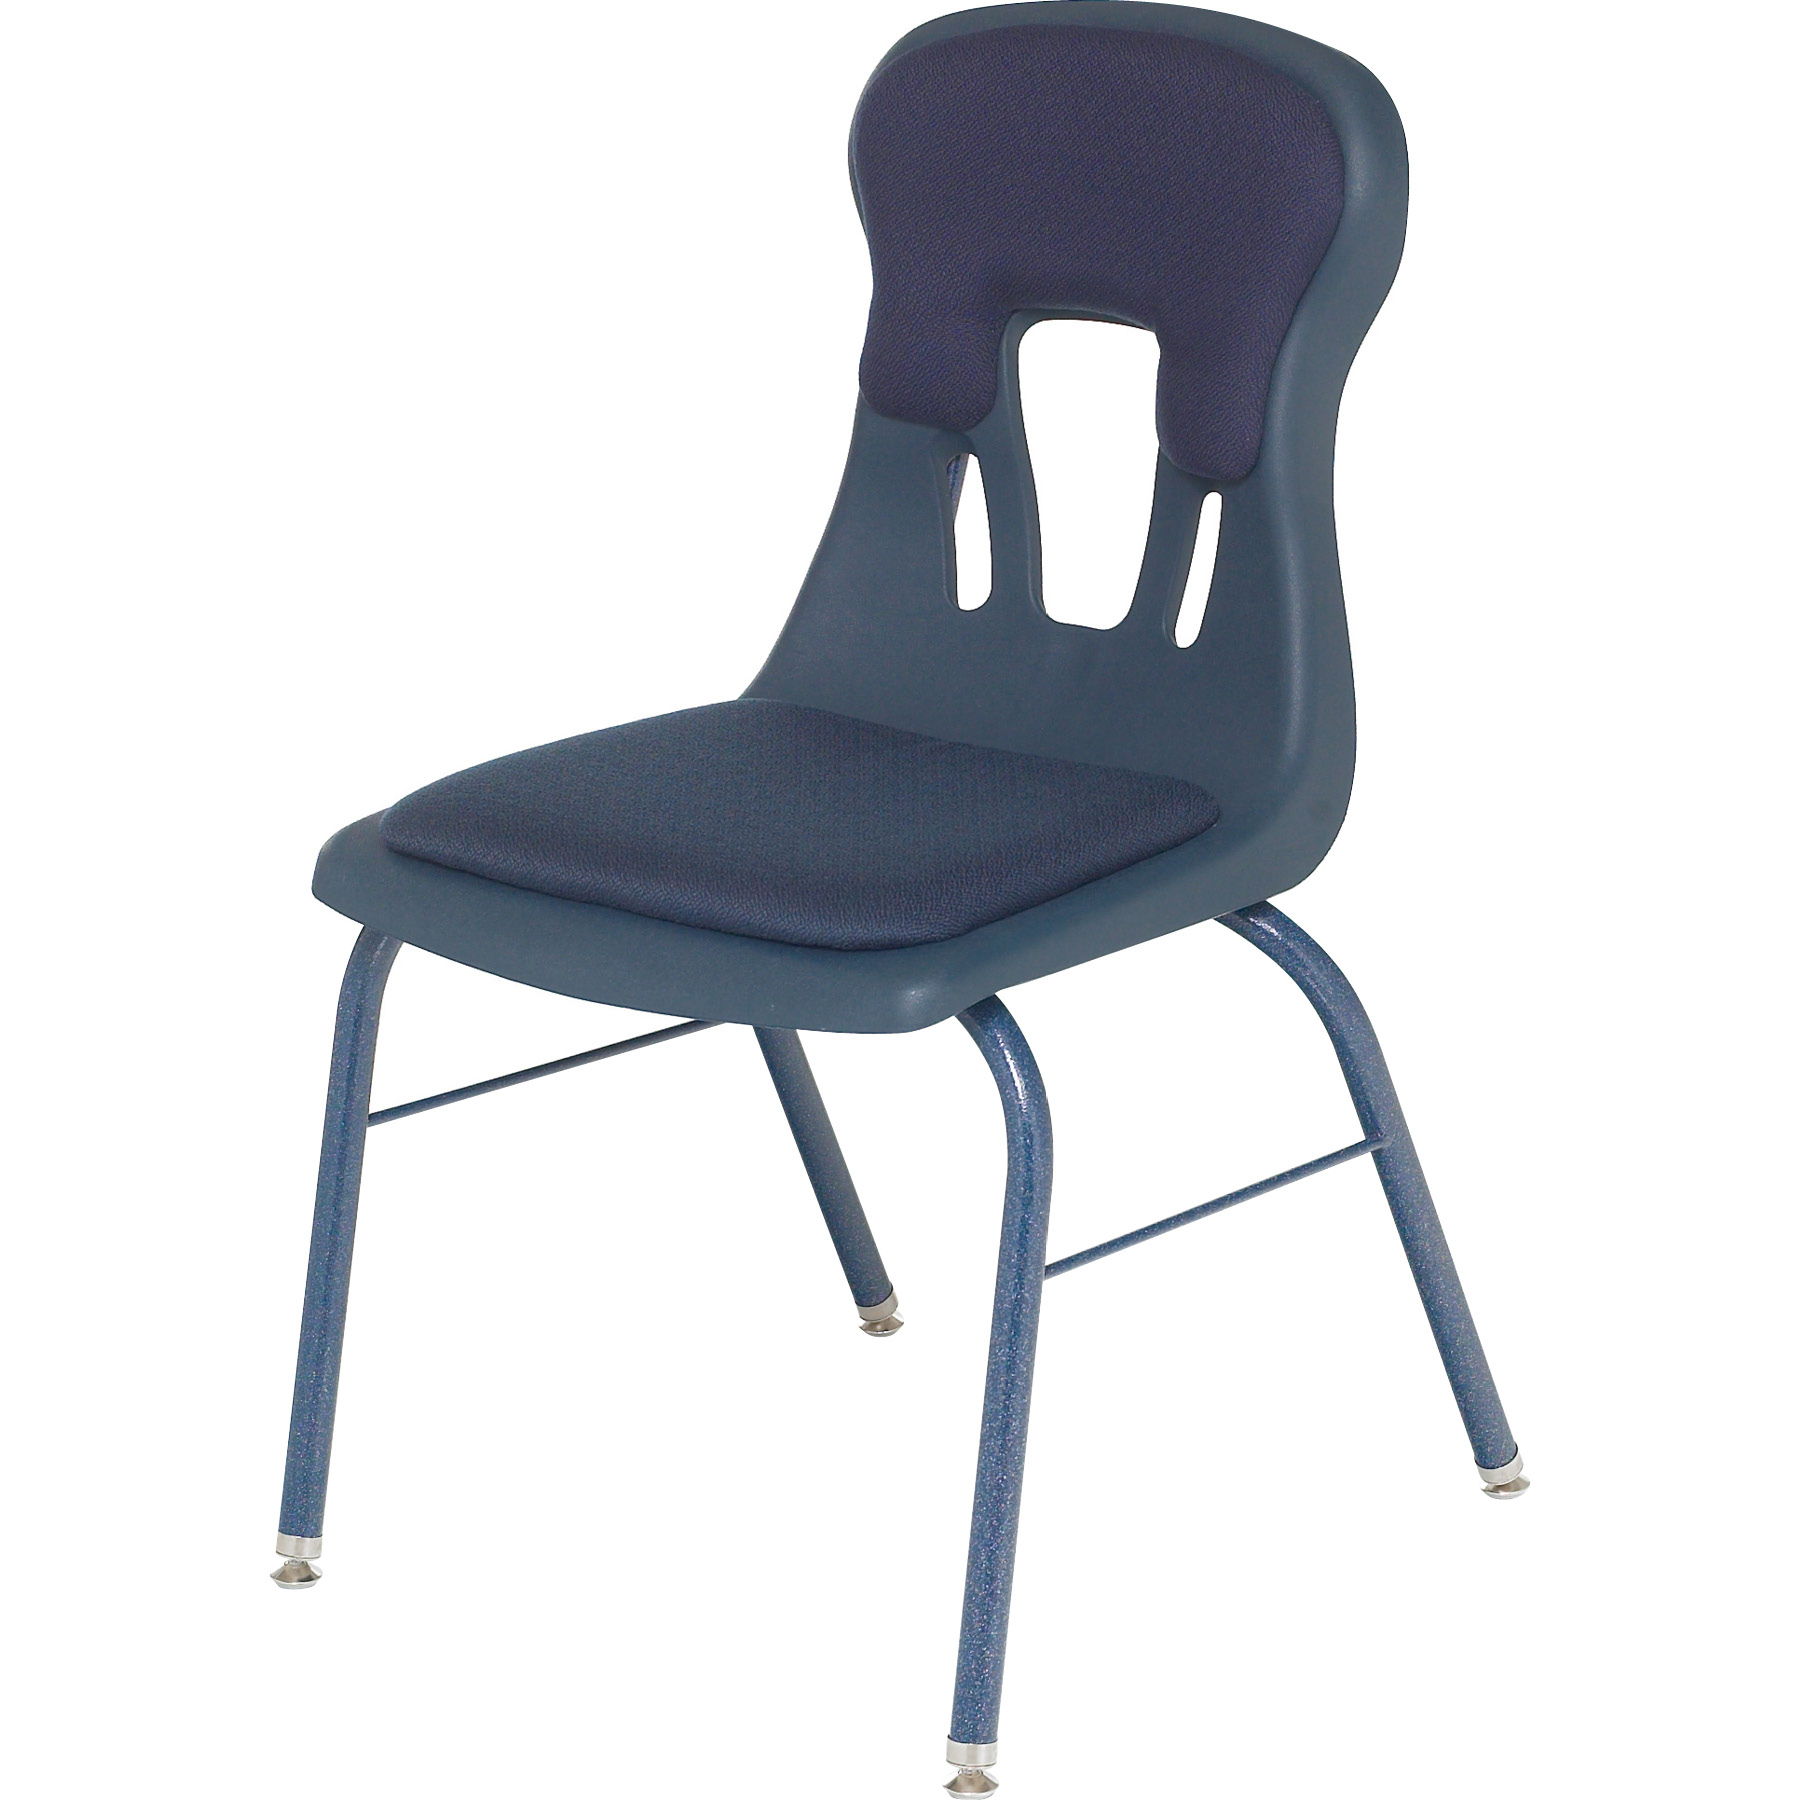 4267 Classic Comfort Upholstered Chair